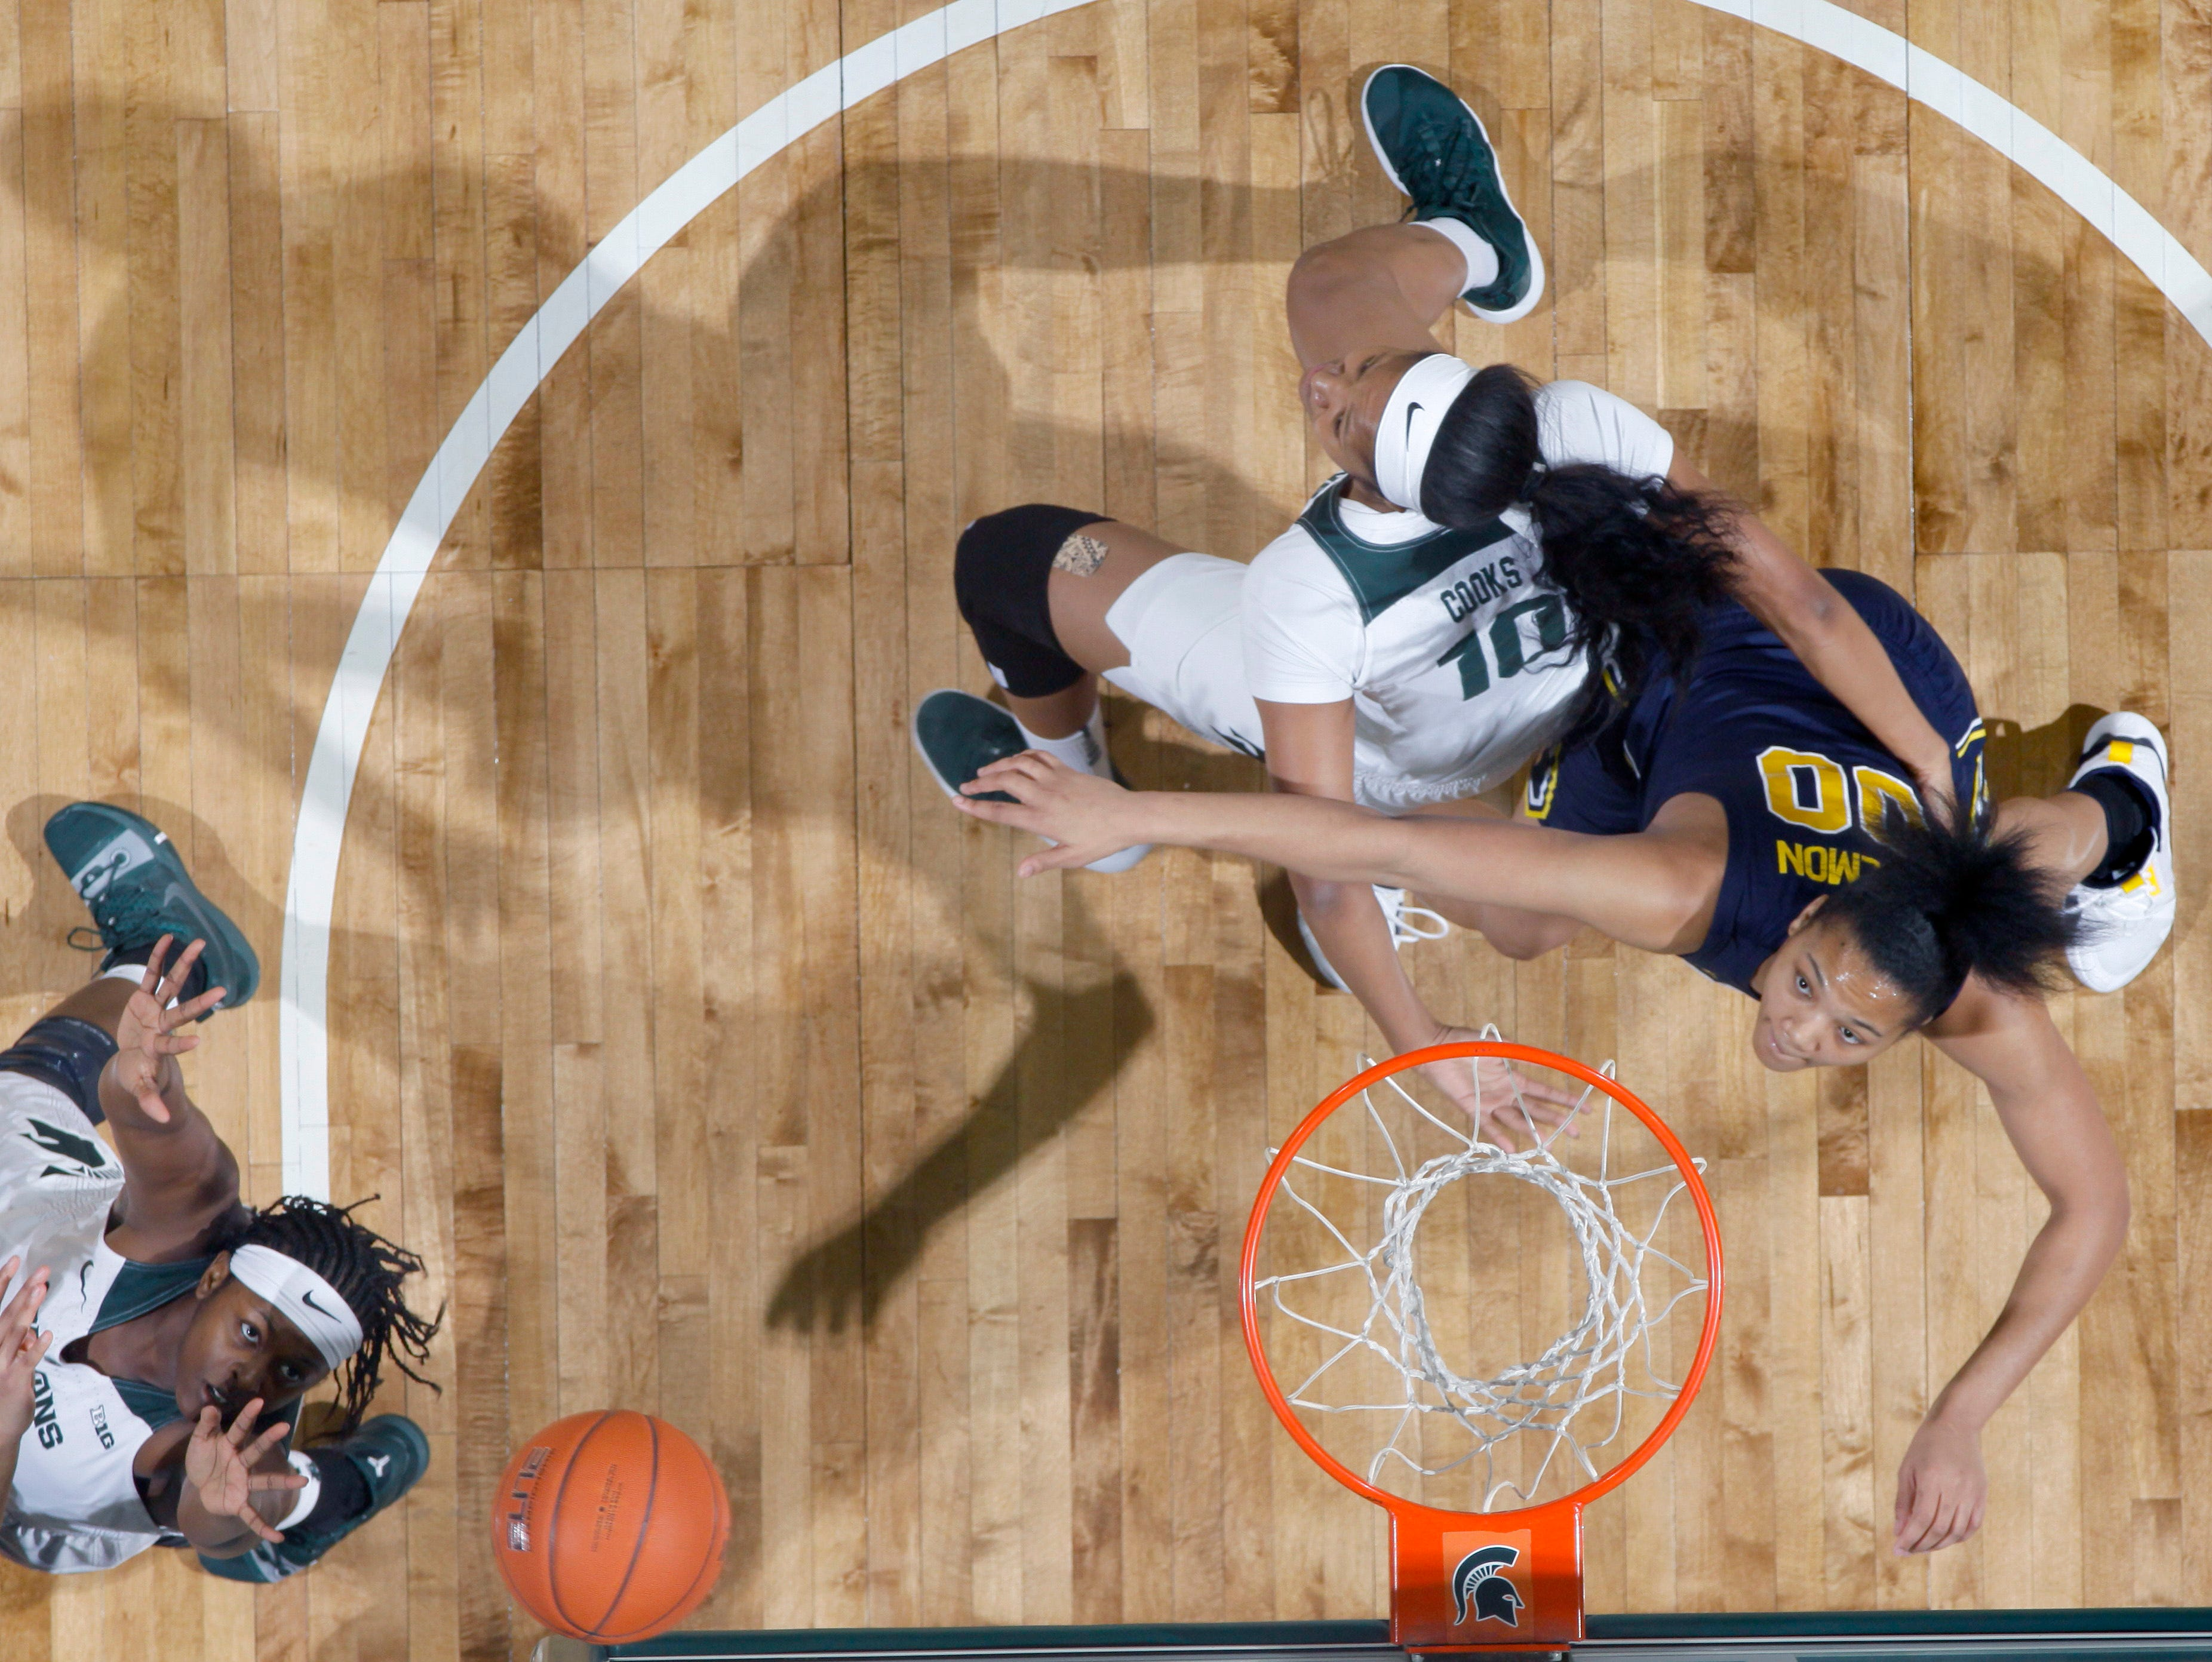 Michigan's Naz Hillmon, right, and Michigan State's Sidney Cooks, center, and Nia Hollie, left, vie for a rebound during the first quarter.